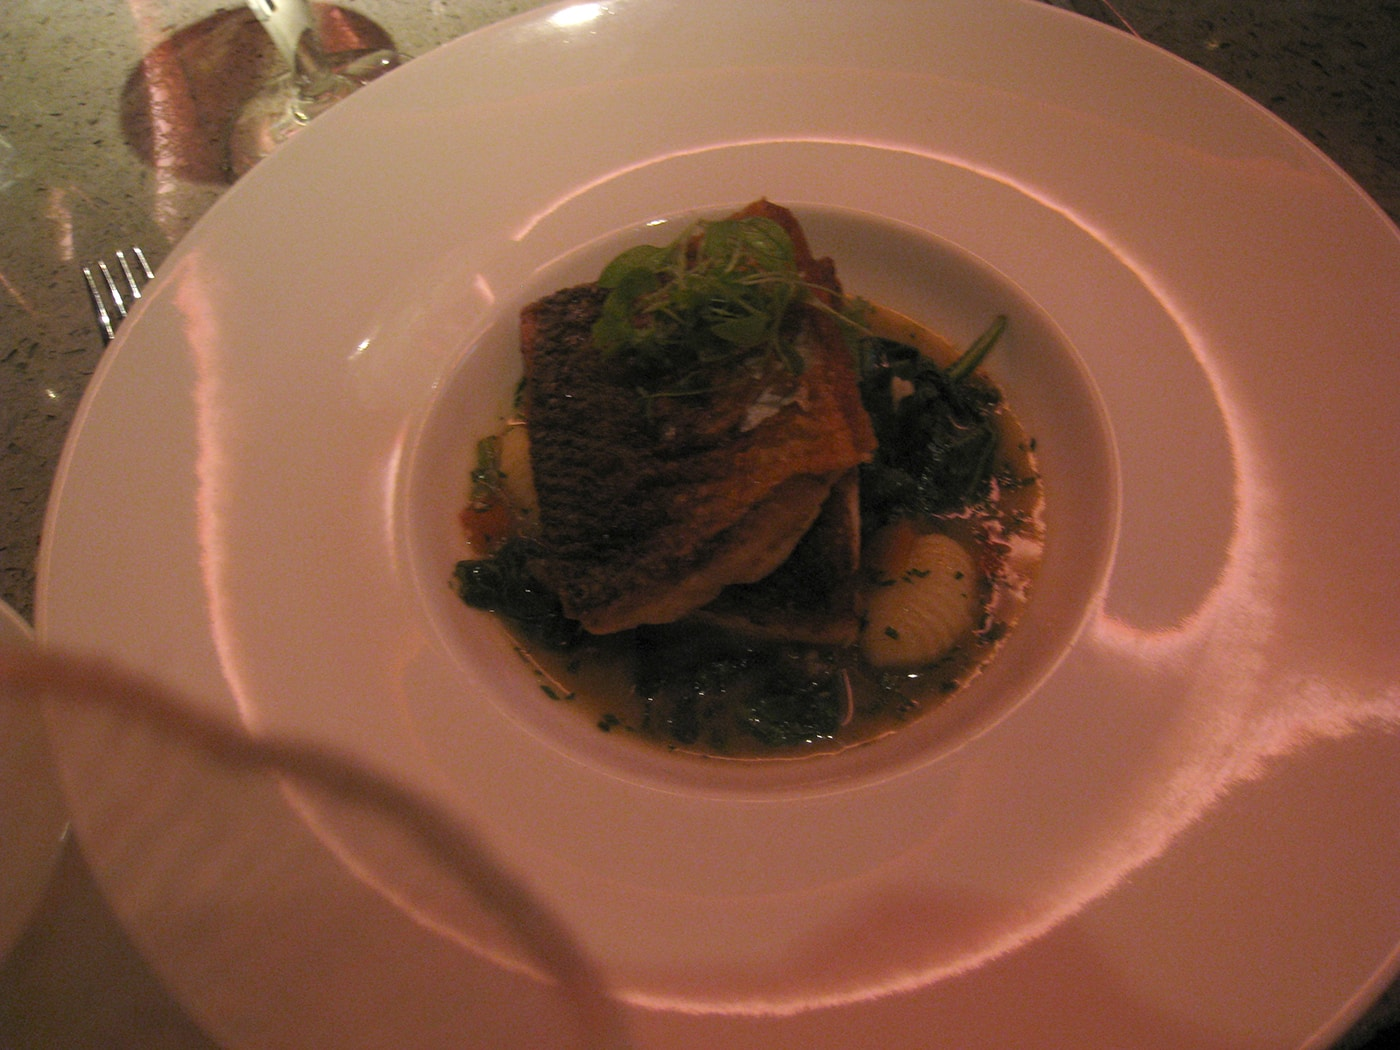 Chicago Restaurant Week. Pan seared fillet of walleye pike with herbed gnocchi and brown butter sauce.